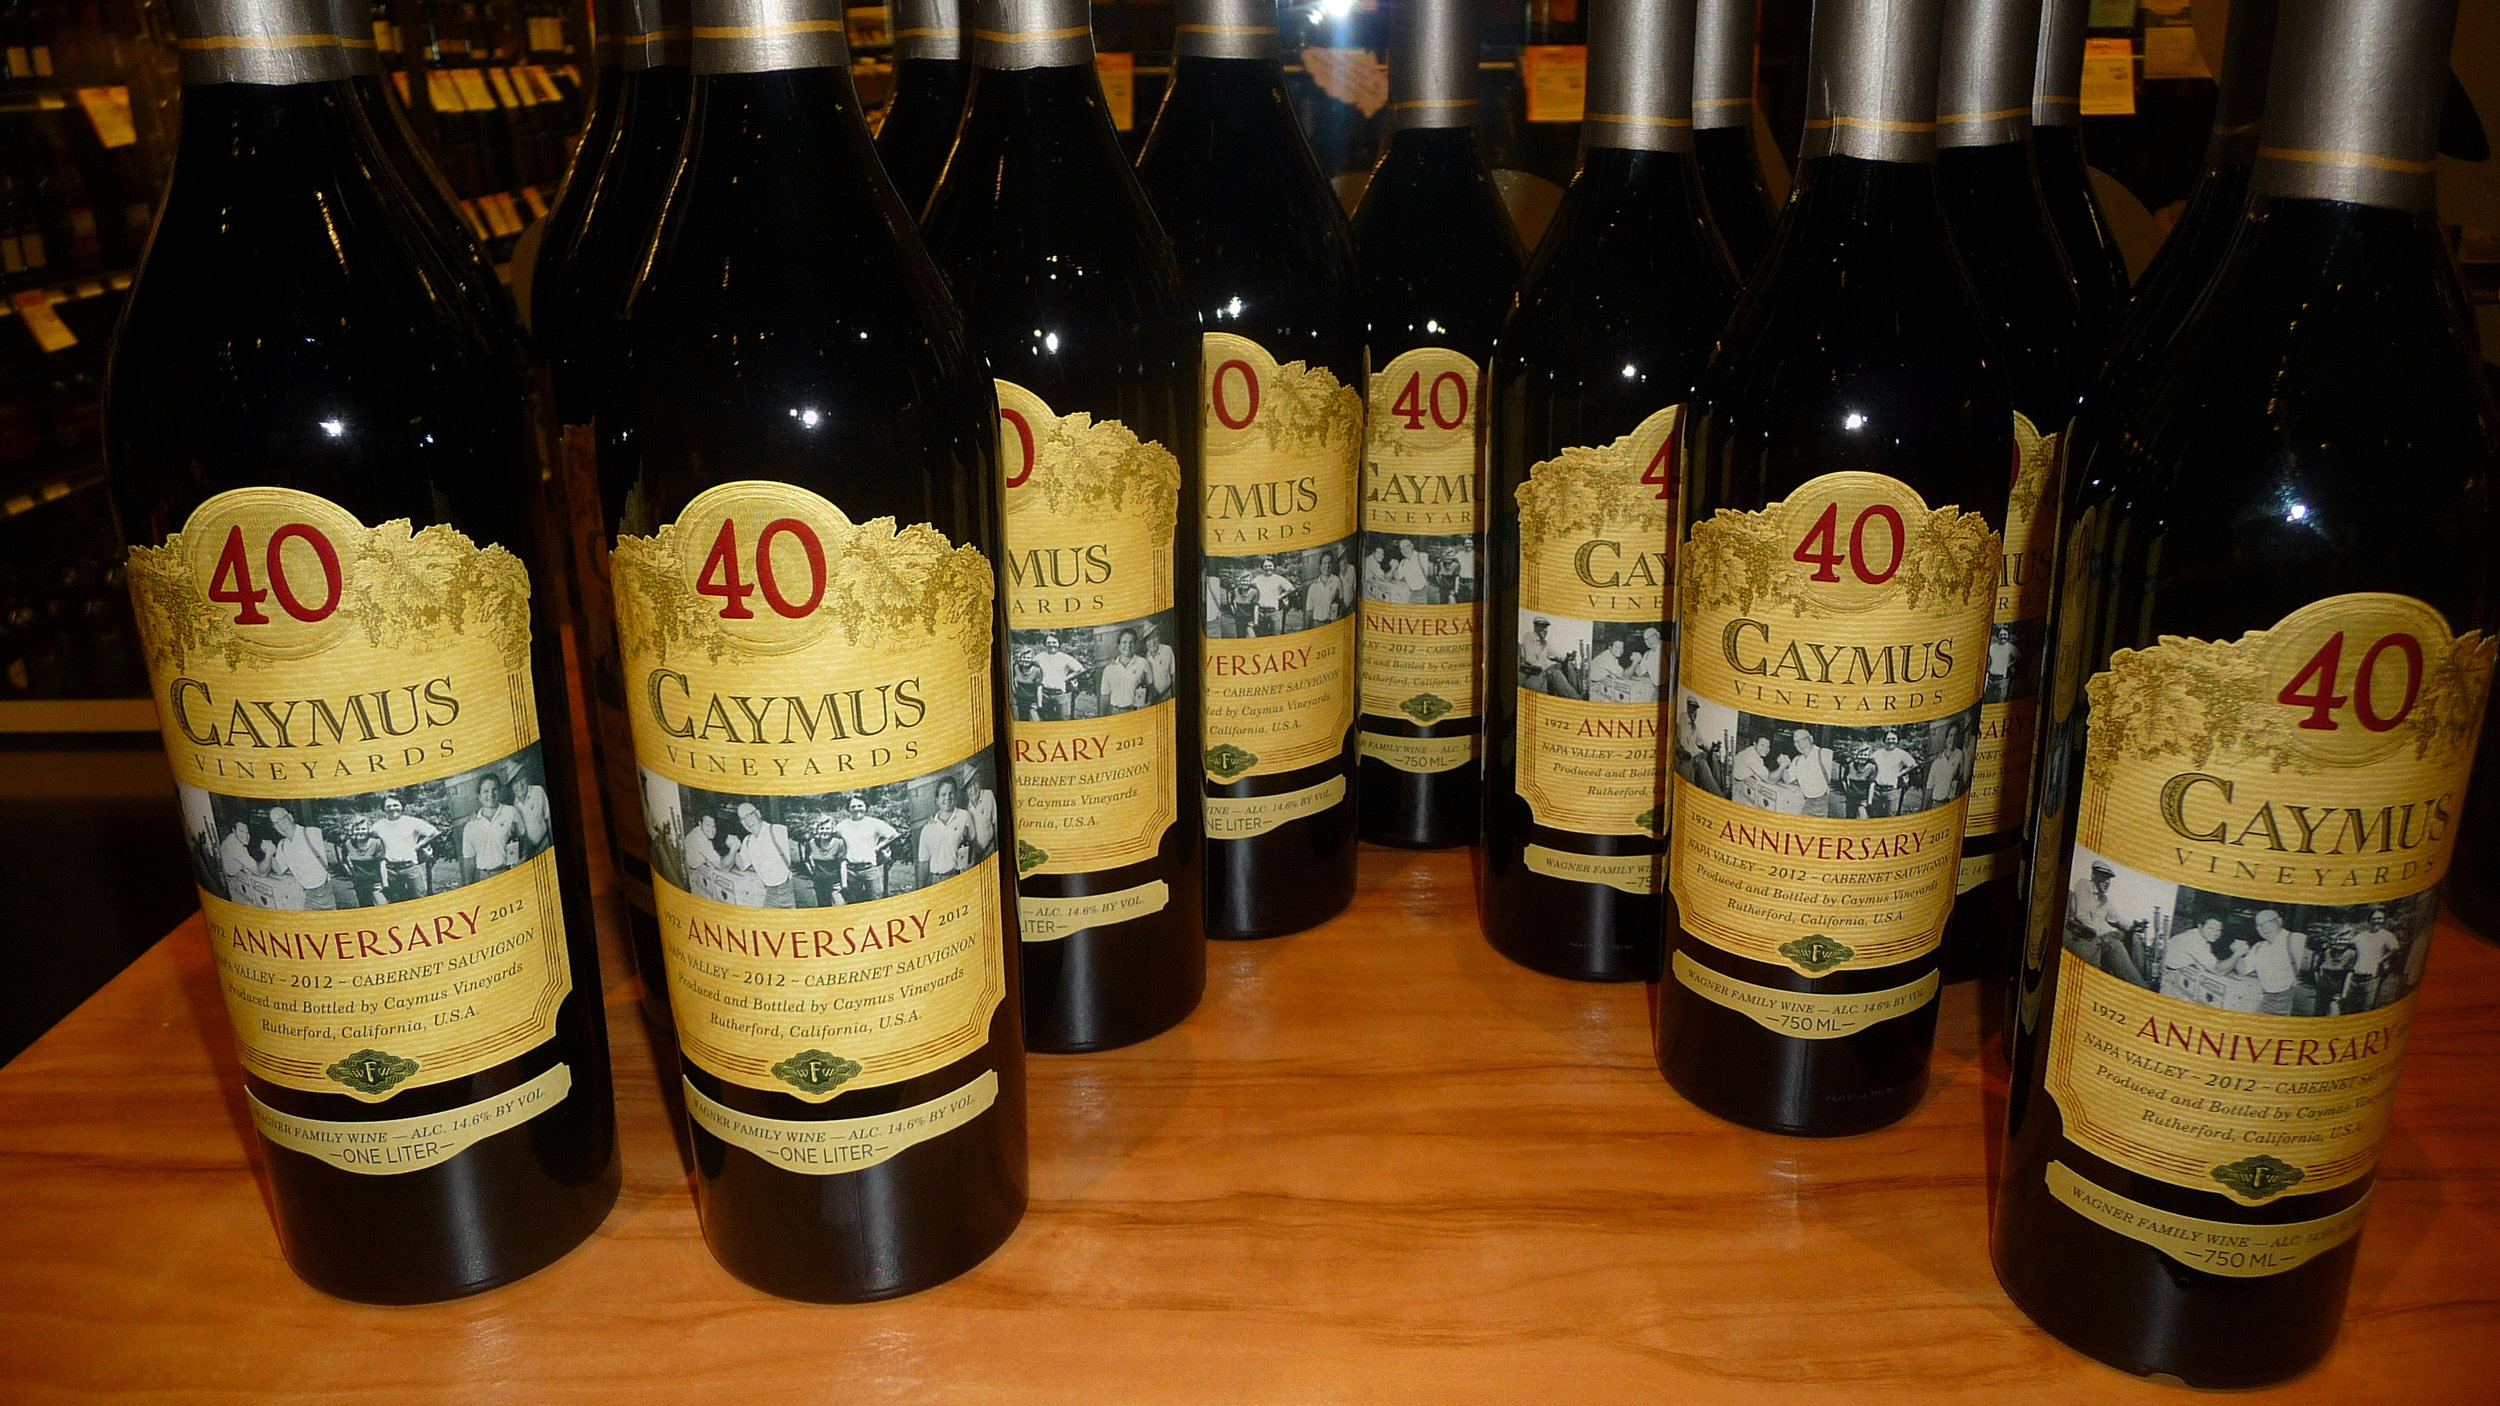 The 40th anniversary edition of the wine that started it all - 2012 Caymus Napa Valley Cabernet